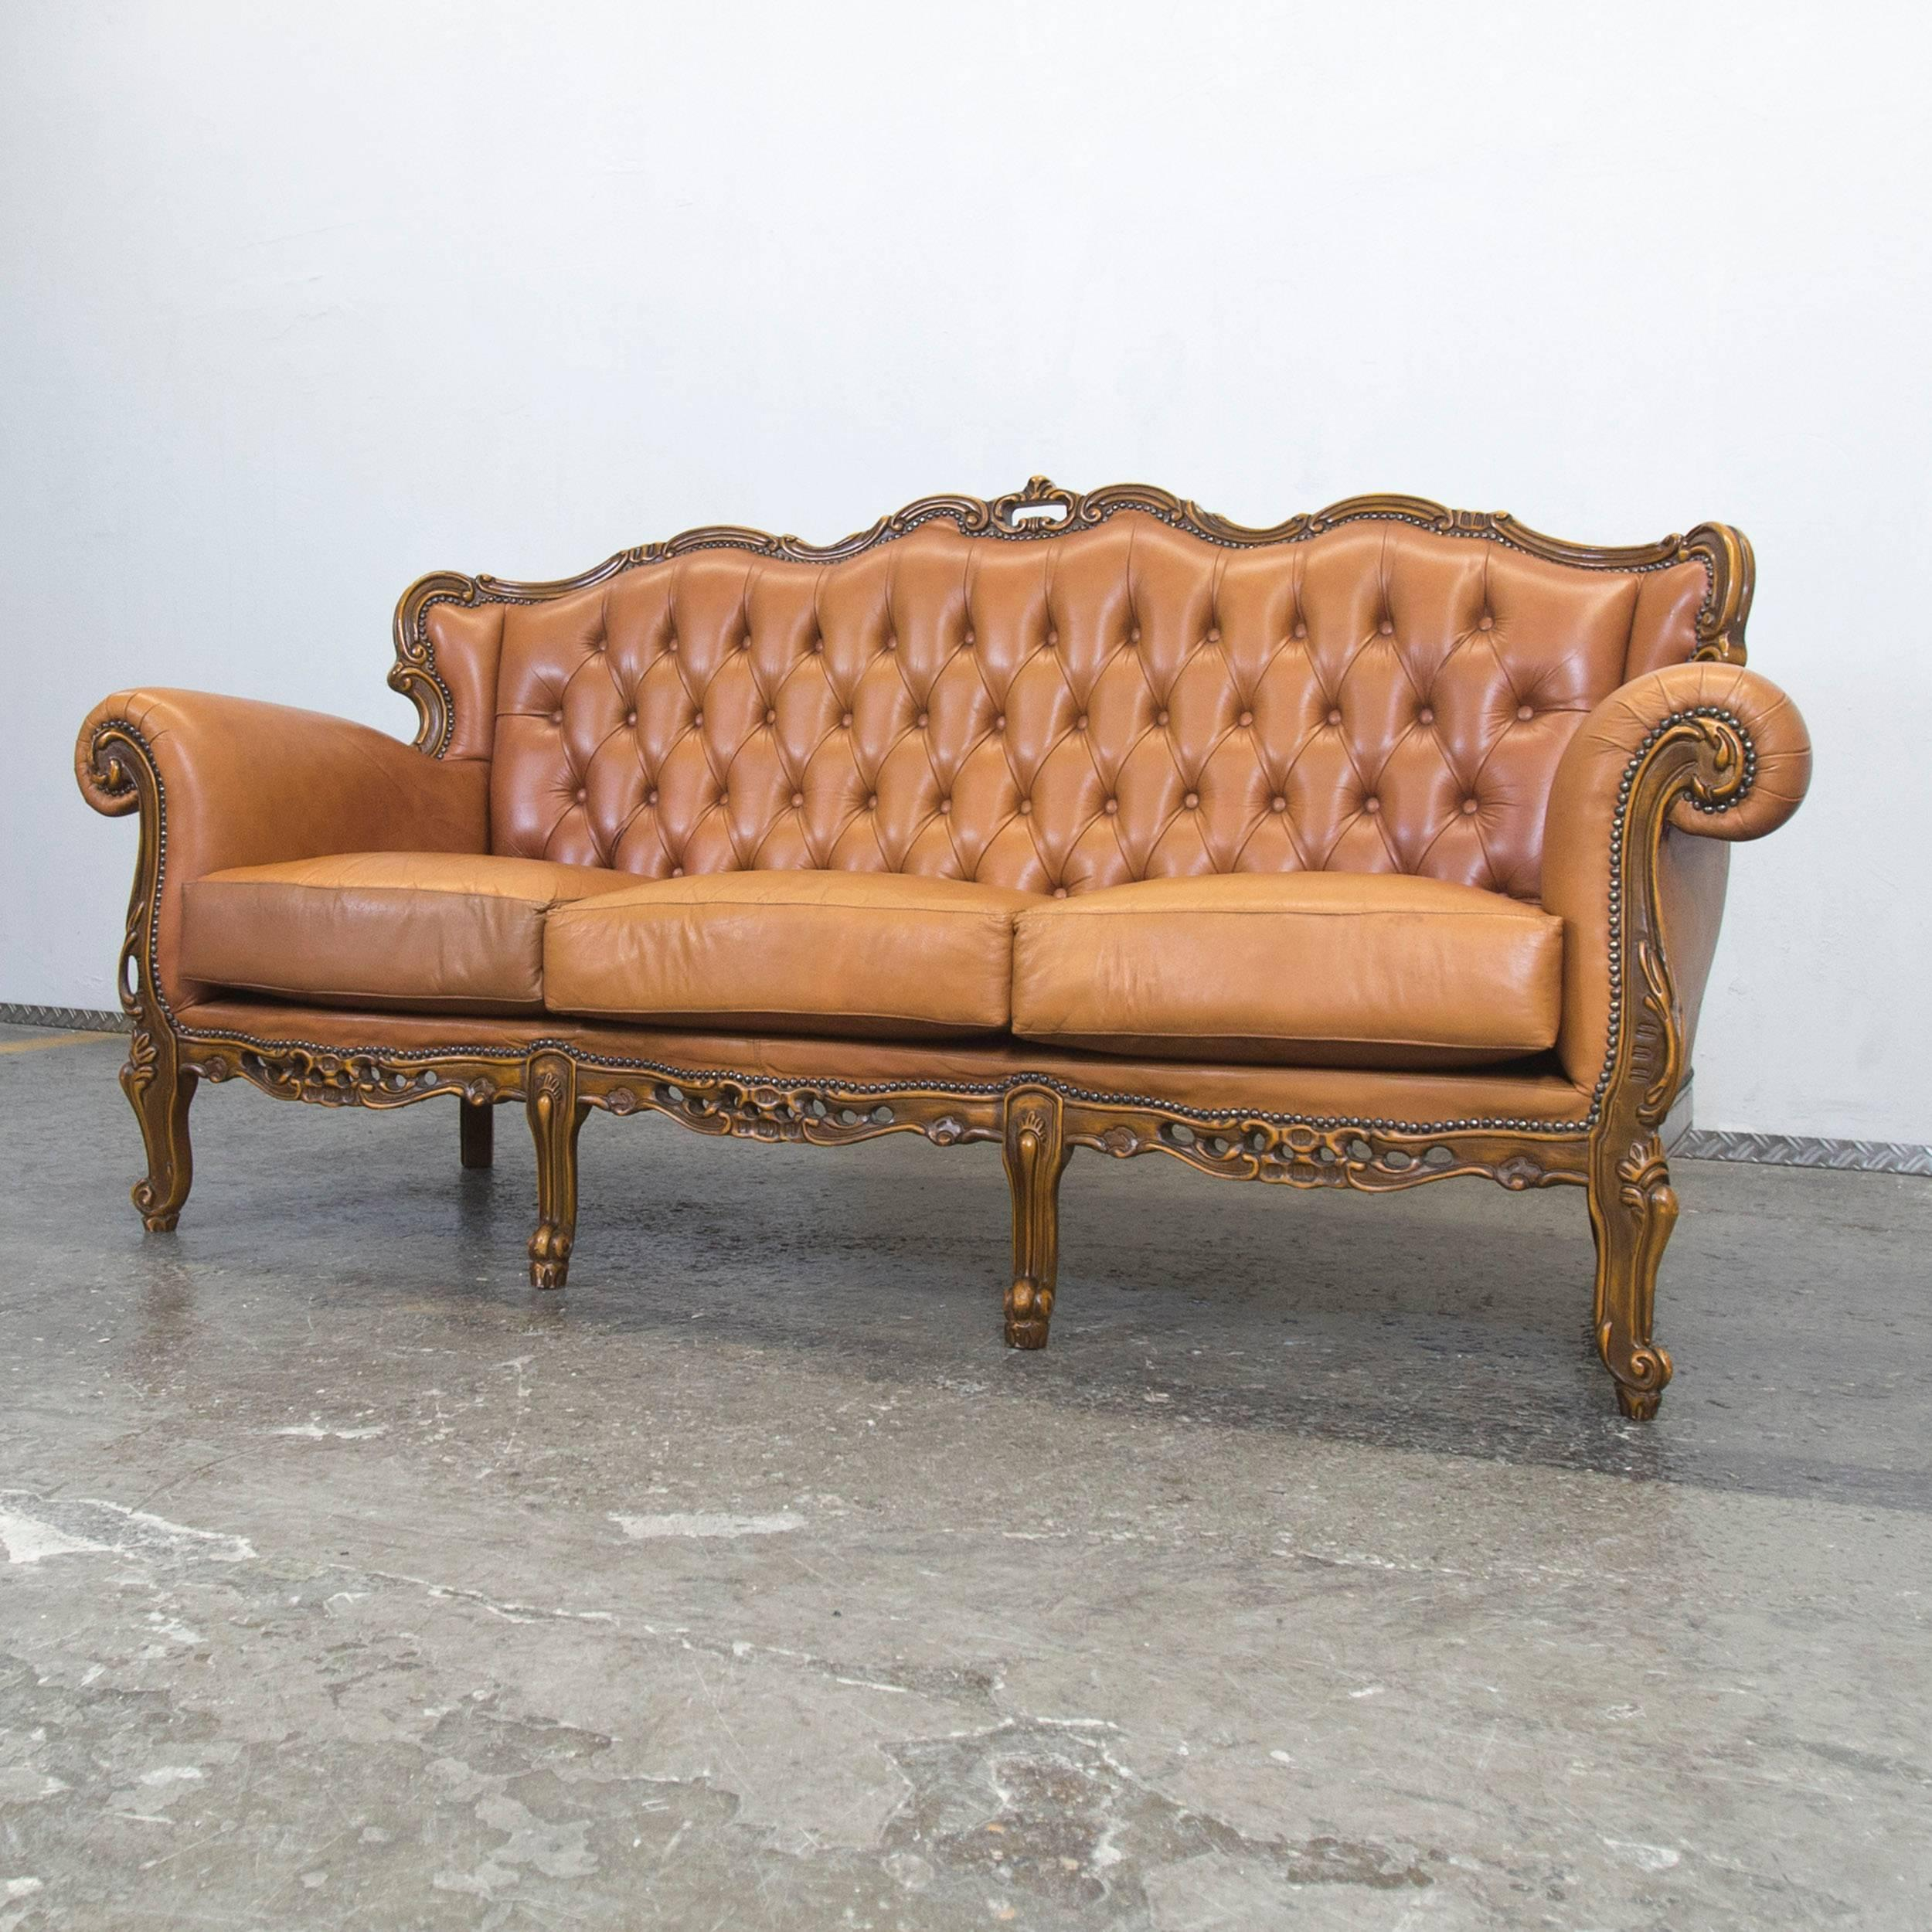 Retro Sofa Wood Chesterfield Baroque Leather Sofa Cognac Brown Three Seat Wood Retro Vintage